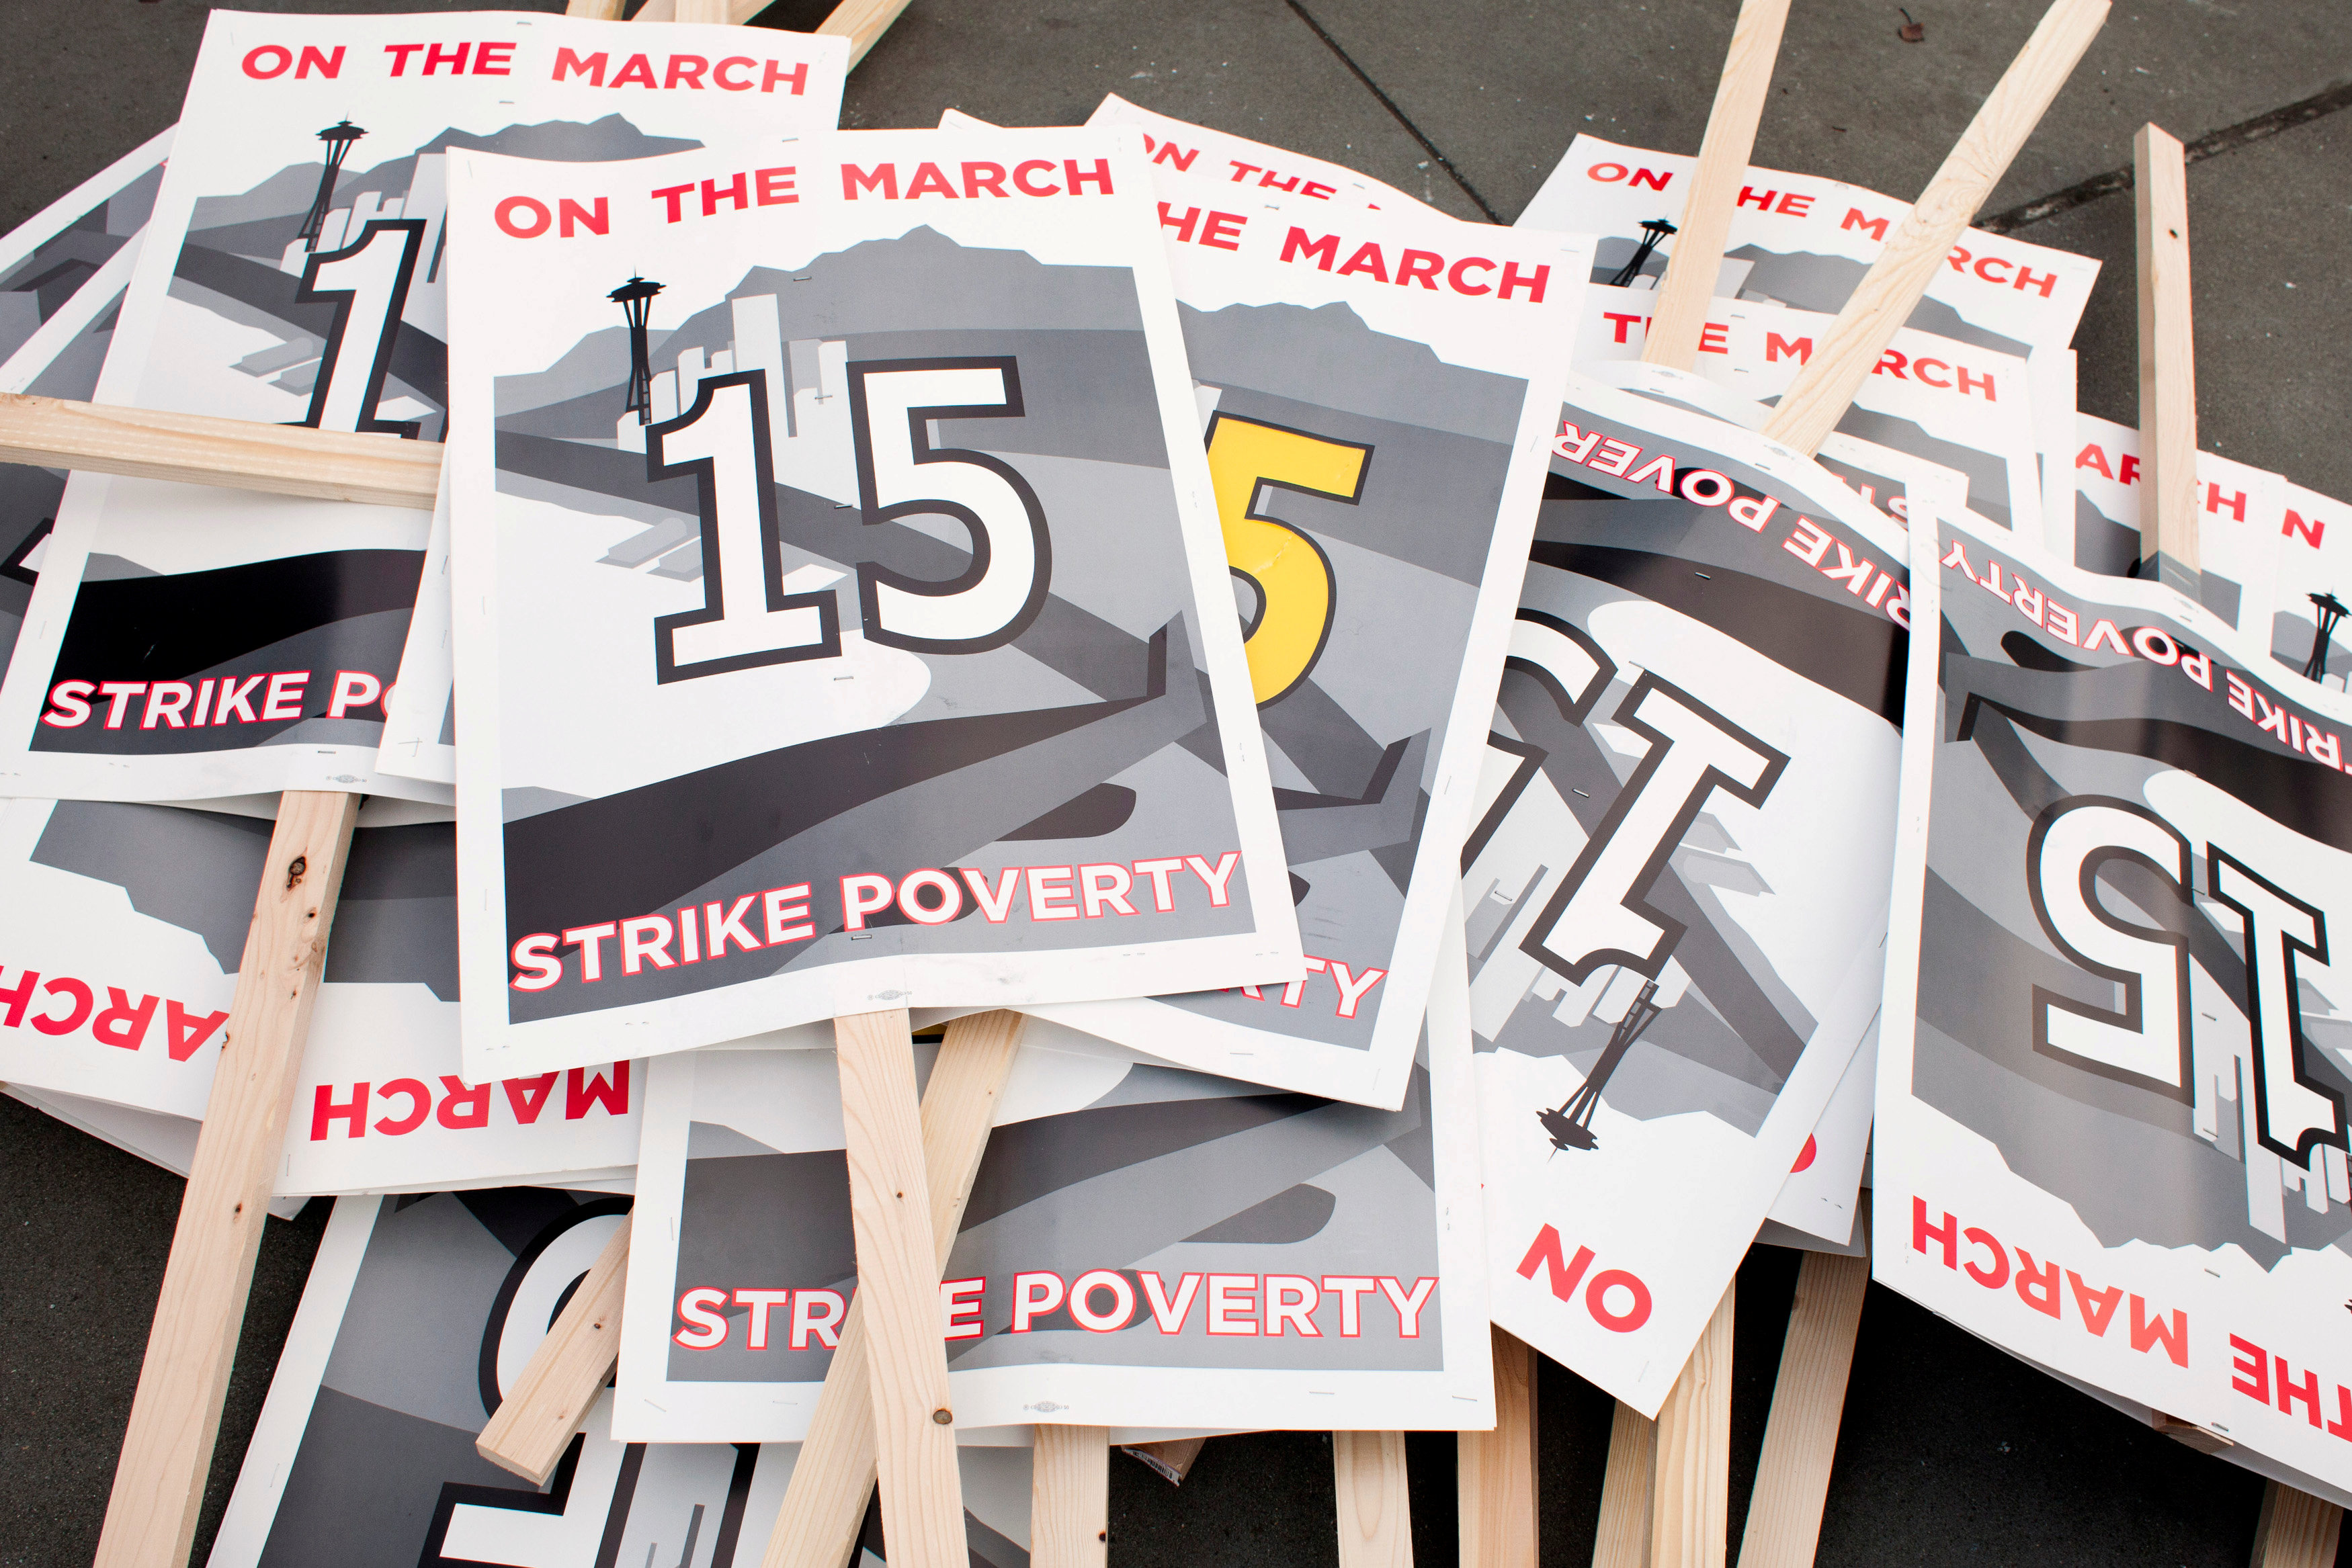 FILE PHOTO: Protest signs are pictured in SeaTac, Washington just before a march from SeaTac to Seattle aimed at the fast food industry and raising the federal minimum wage and Seattle's minimum wage to $15 an hour December 5, 2013. REUTERS/David Ryder/File Photo